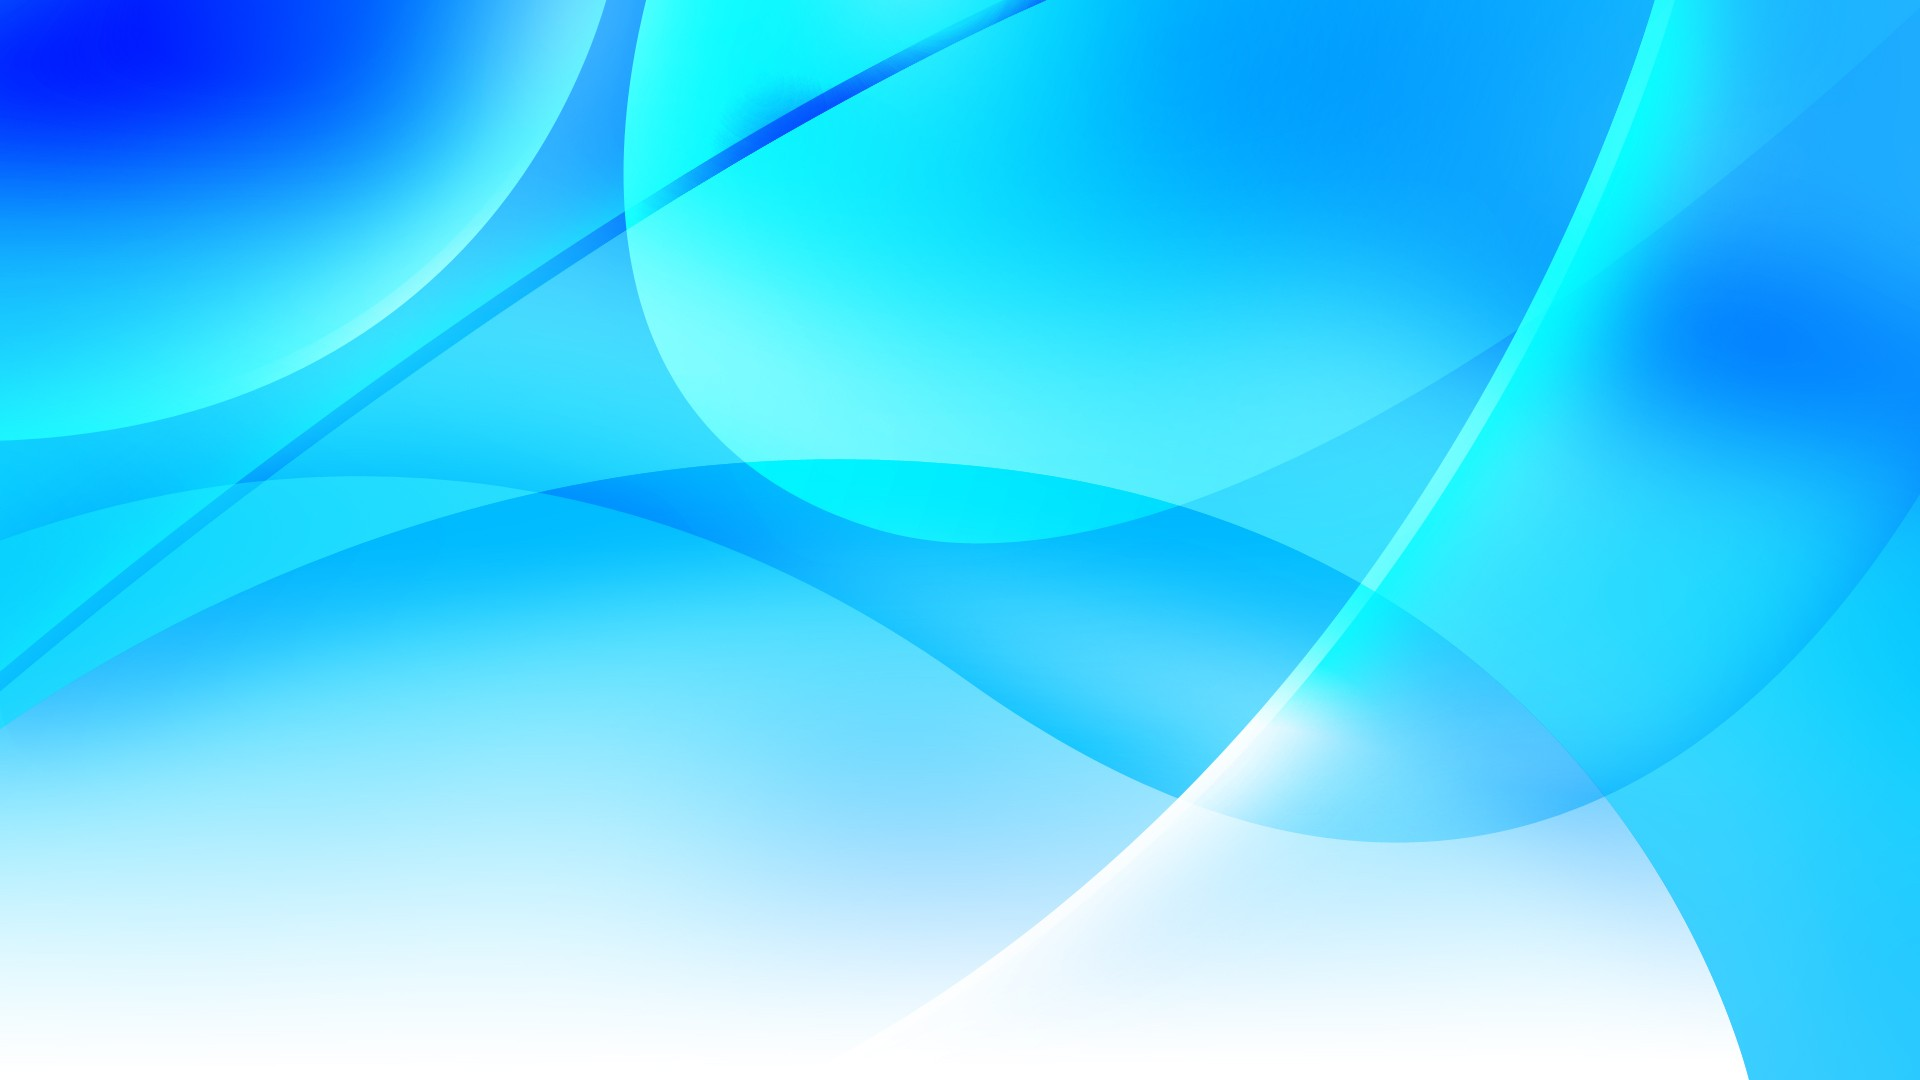 Blue and White background  Download free amazing